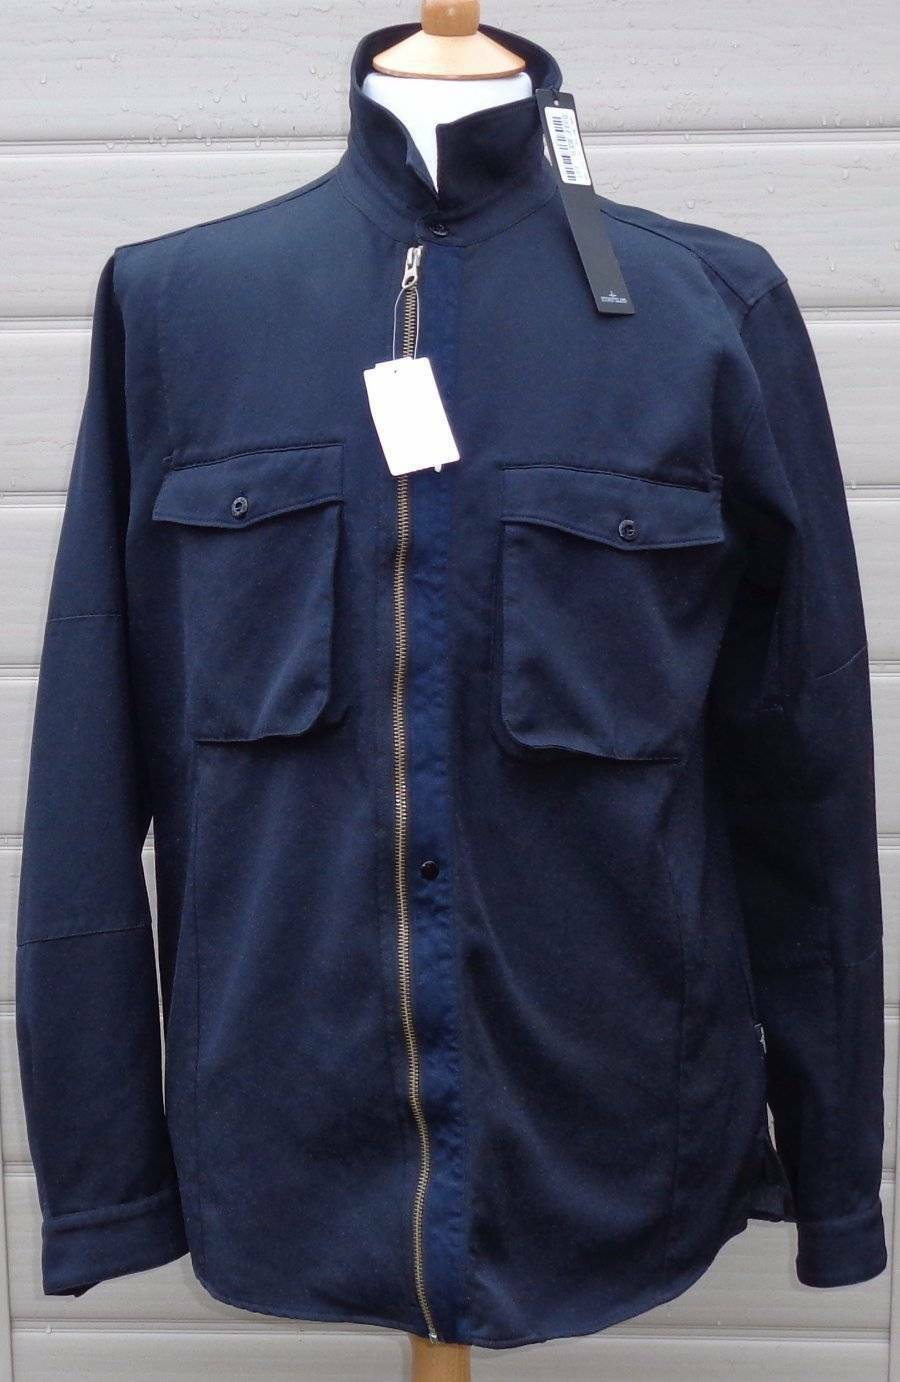 STONE ISLAND SHADOW PROJECT ZIPPED SHIRT Größe SMALL NEW WITH TAGS    Tadellos